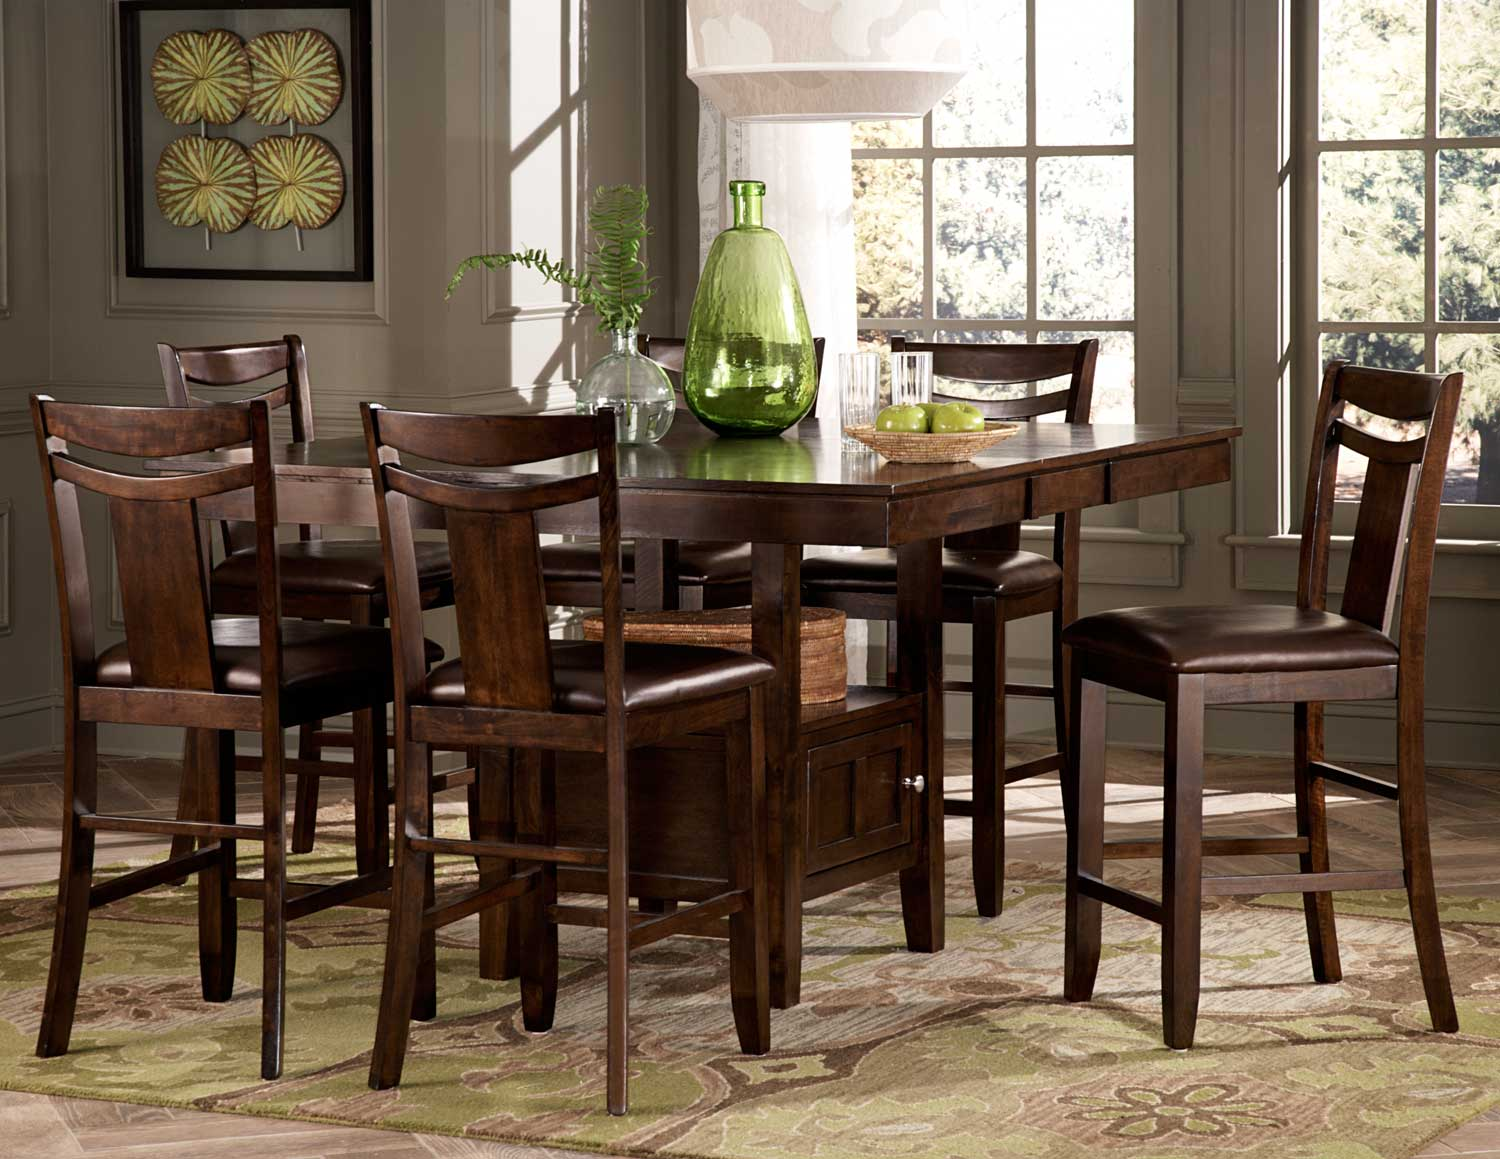 Homelegance Broome Counter Height Dining Set Dark Brown